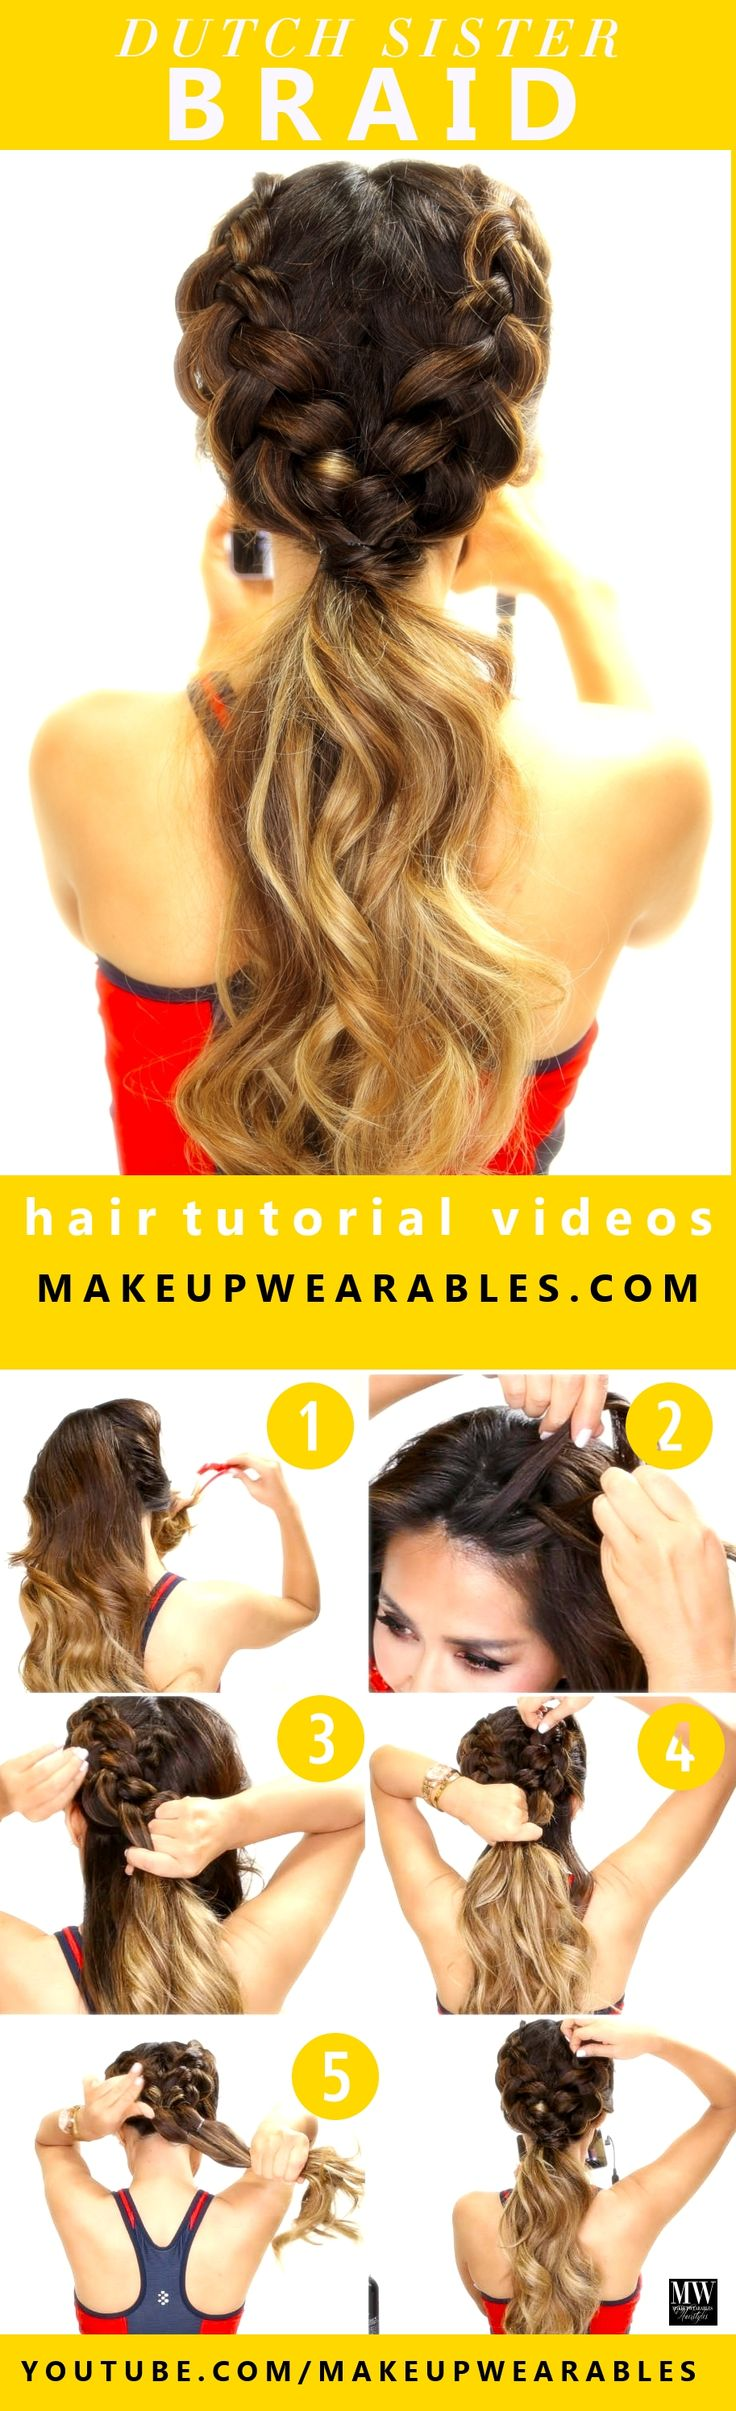 How to easy Dutch braid workout hairstyles for long medium hair - This hairstyle is a double Dutch braid ponytail well suited for school, sports, workouts, and fitness activities. All you short haired girls can rejoice, this can be done on short hair as well! - If you like this pin, repin it and follow our boards :-) #FastSimpleFitness - www.facebook.com/FastSimpleFitness